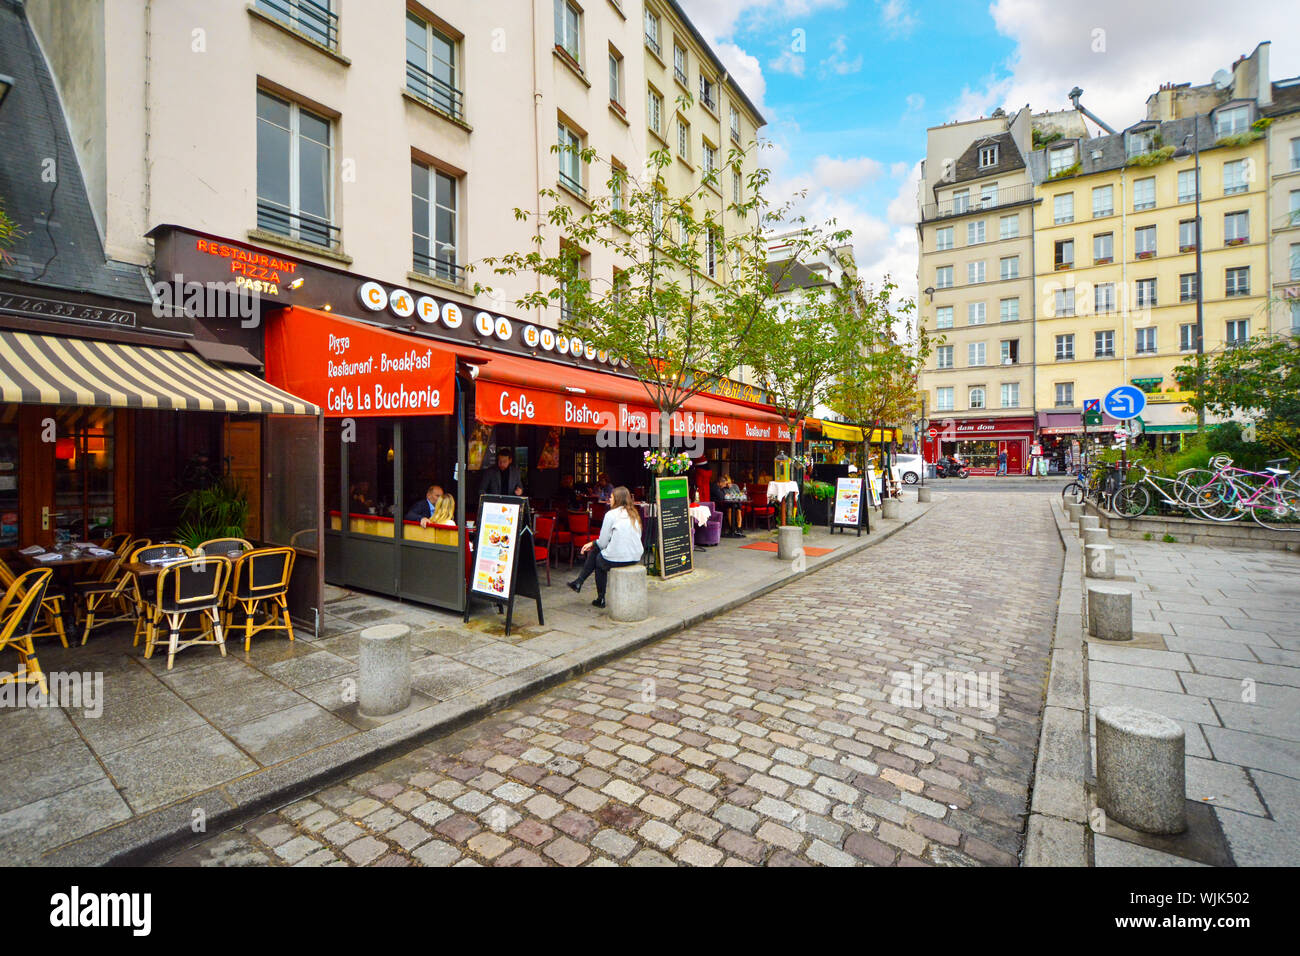 A typical Parisian Latin Quarter bistro with sidewalk cafe seating on an early morning in the 4th arrondissement of Paris France. Stock Photo